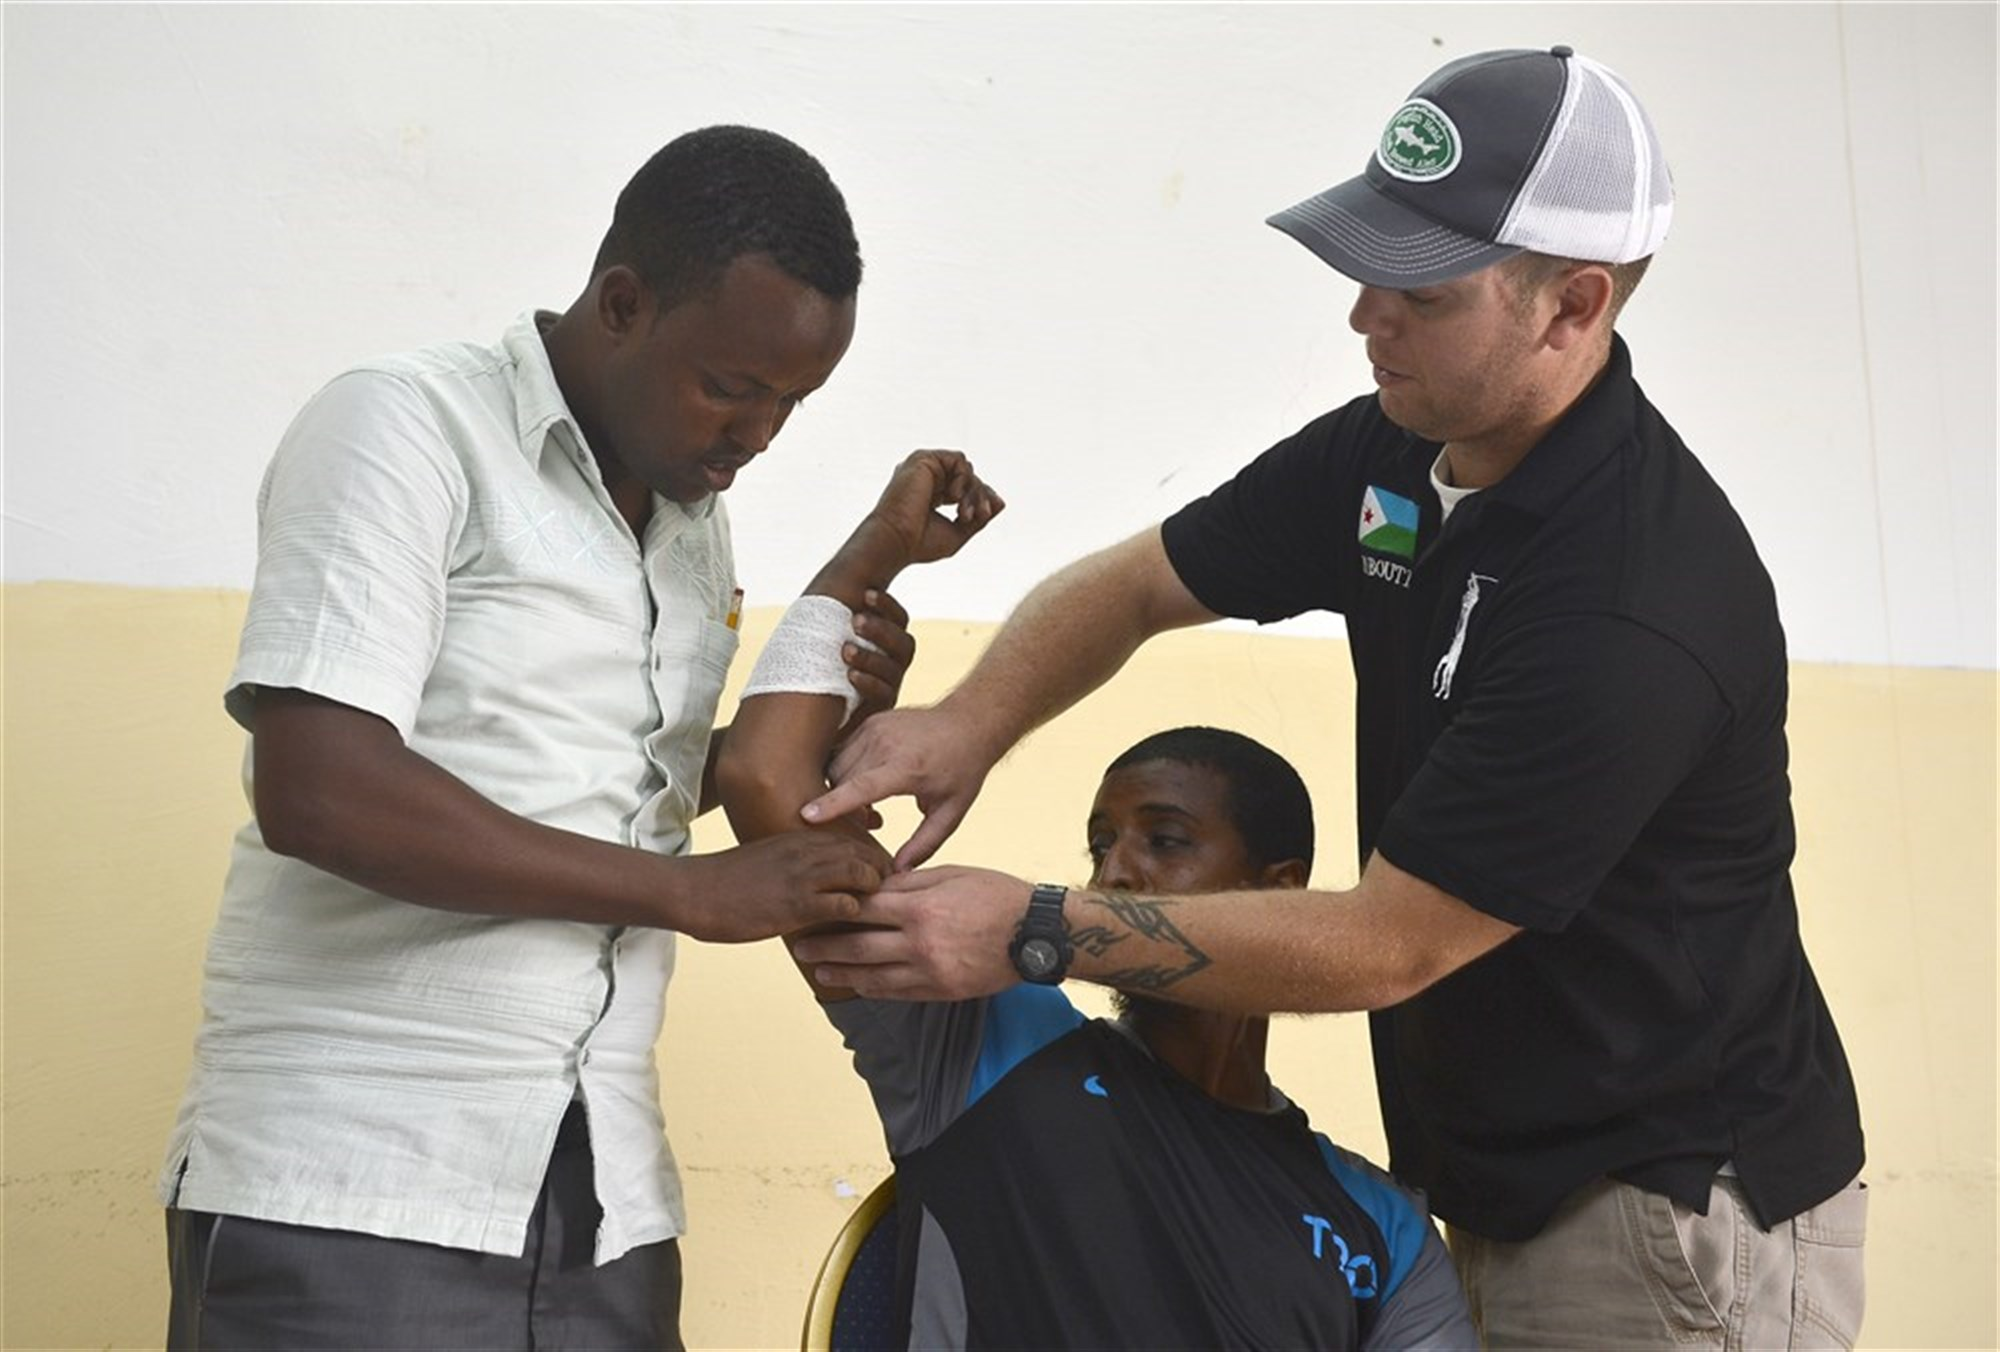 U.S. Army Staff Sgt. Joshua Domalski, Civil Affairs Battalion specialist and medic, right, demonstrates first aid procedures for community health workers in Obock, Djibouti, Oct. 17, 2015. The U.S. Army Civil Affairs Bn, assigned to Combined Joint Task Force-Horn of Africa, held a community health worker course, during which instructors taught basic preventative medicine measures, first aid, oral hygiene care, and the health hazards of female genital mutilation.